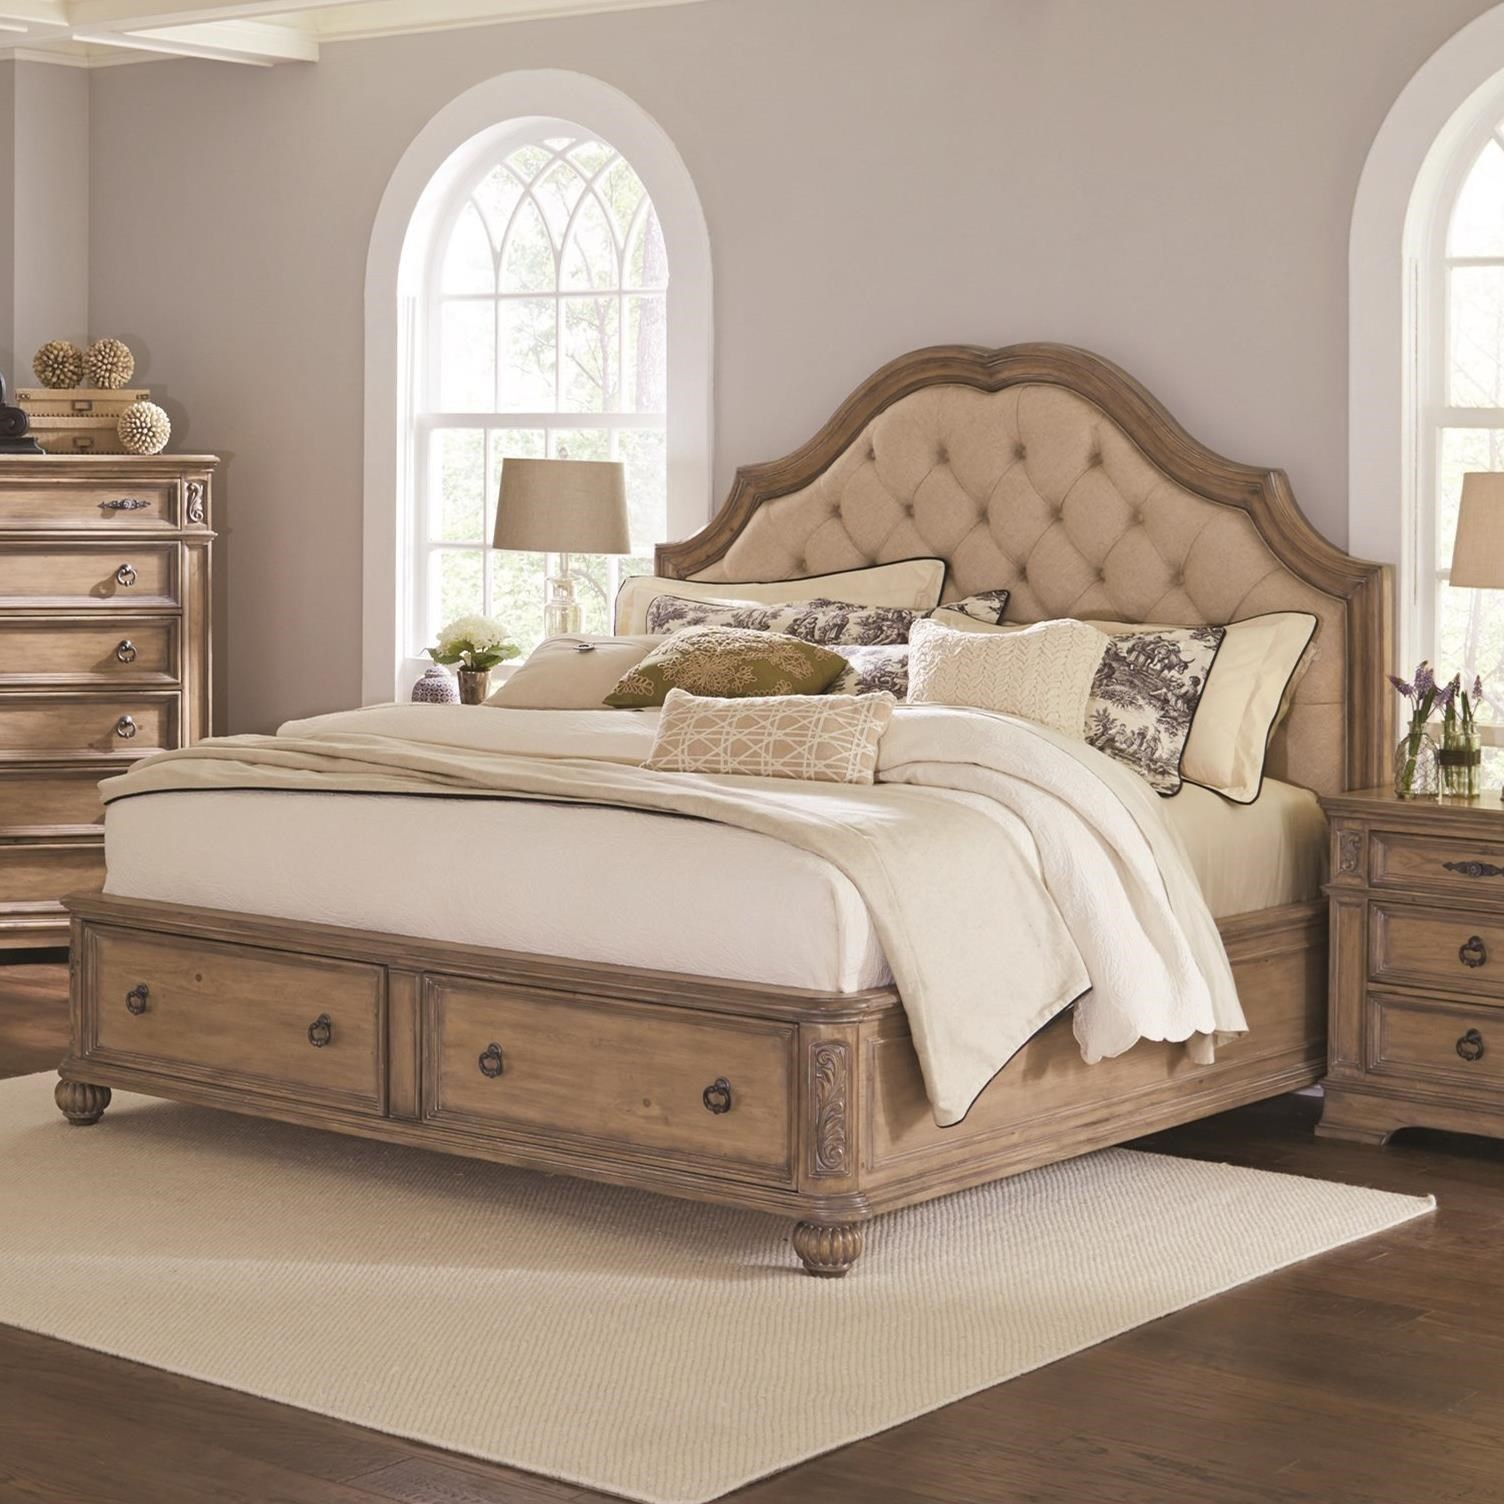 Coaster Ilana King Storage Bed With Upholstered Headboard